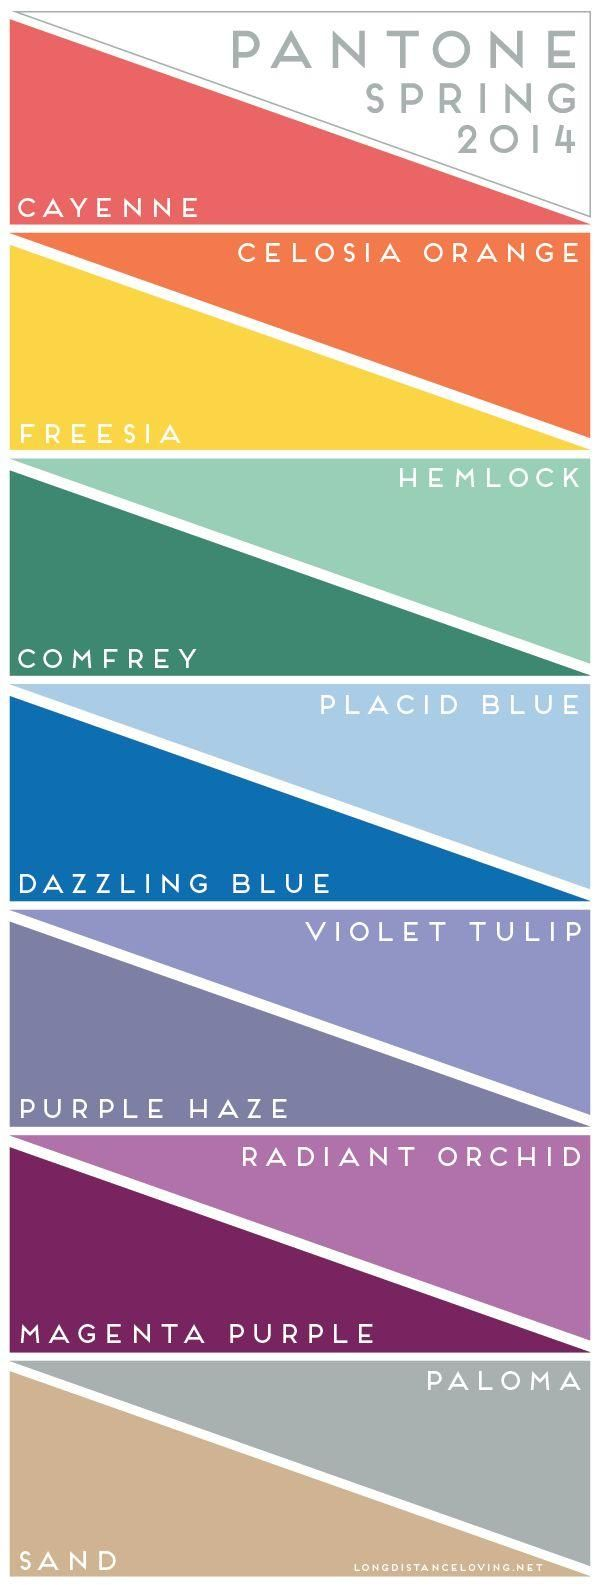 pantone color report: spring 2014 get your hue on! color palette inspiration for weddings, craft and design inspiration